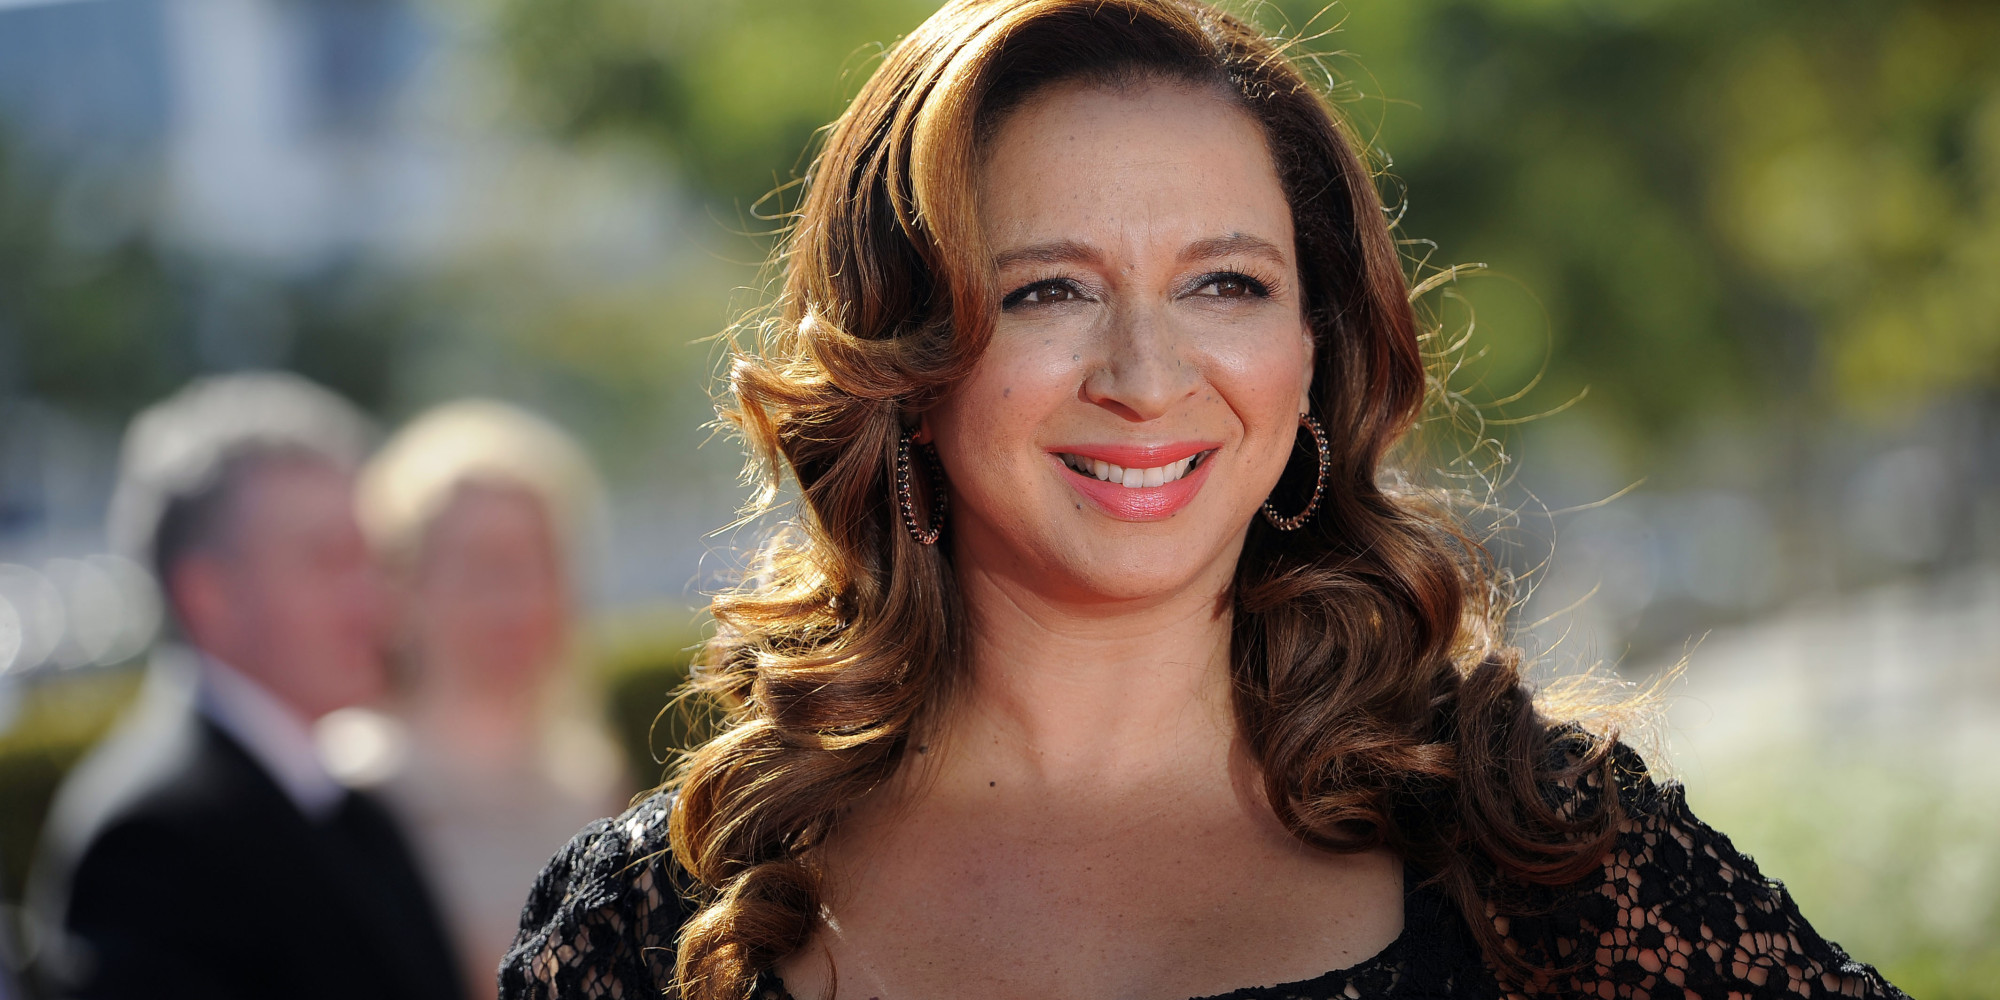 Maya Rudolph Wallpapers Images Photos Pictures Backgrounds